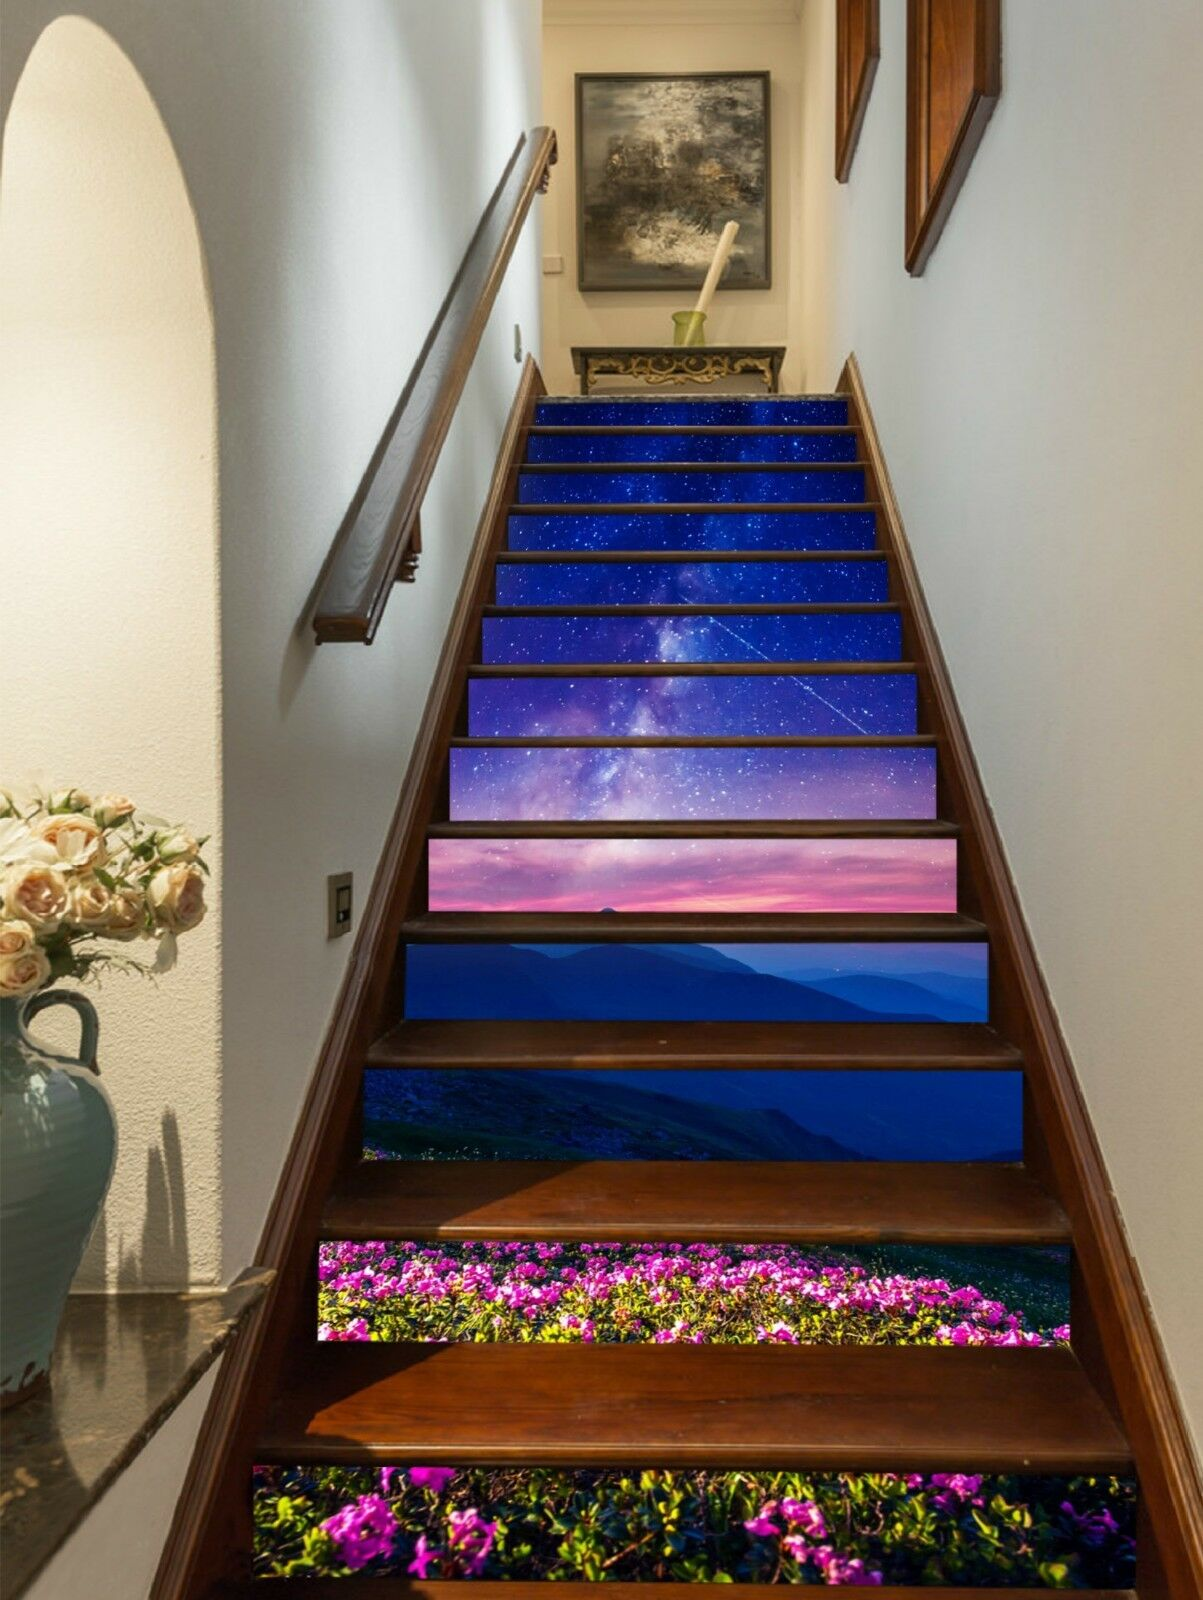 3D Flowers Hills Stair Risers Decoration Photo Mural Vinyl Decal Wallpaper US